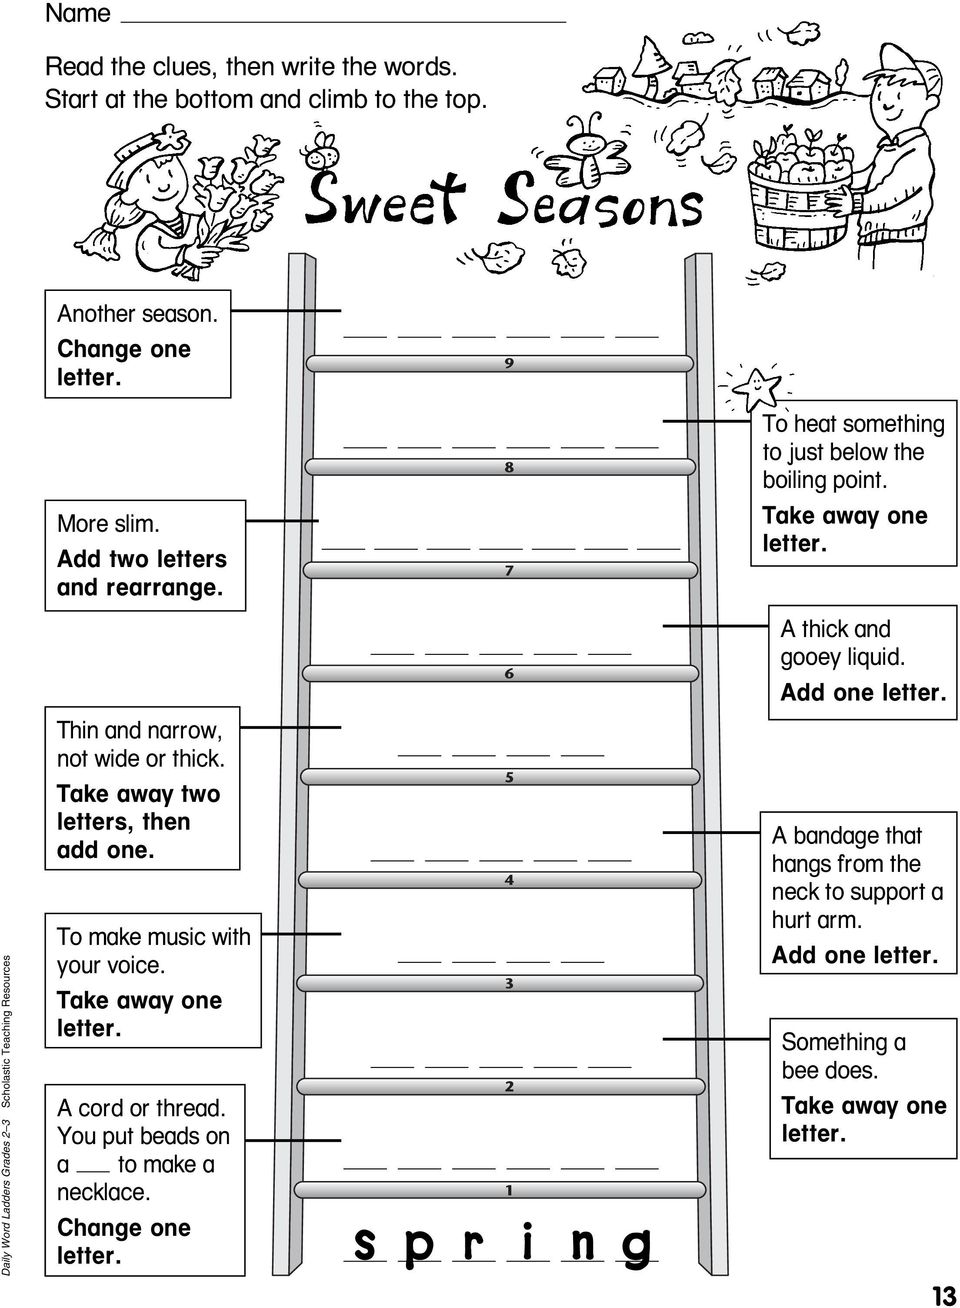 Daily Word Ladders Grades Scholastic Teaching Resources Thin and narrow, not wide or thick.